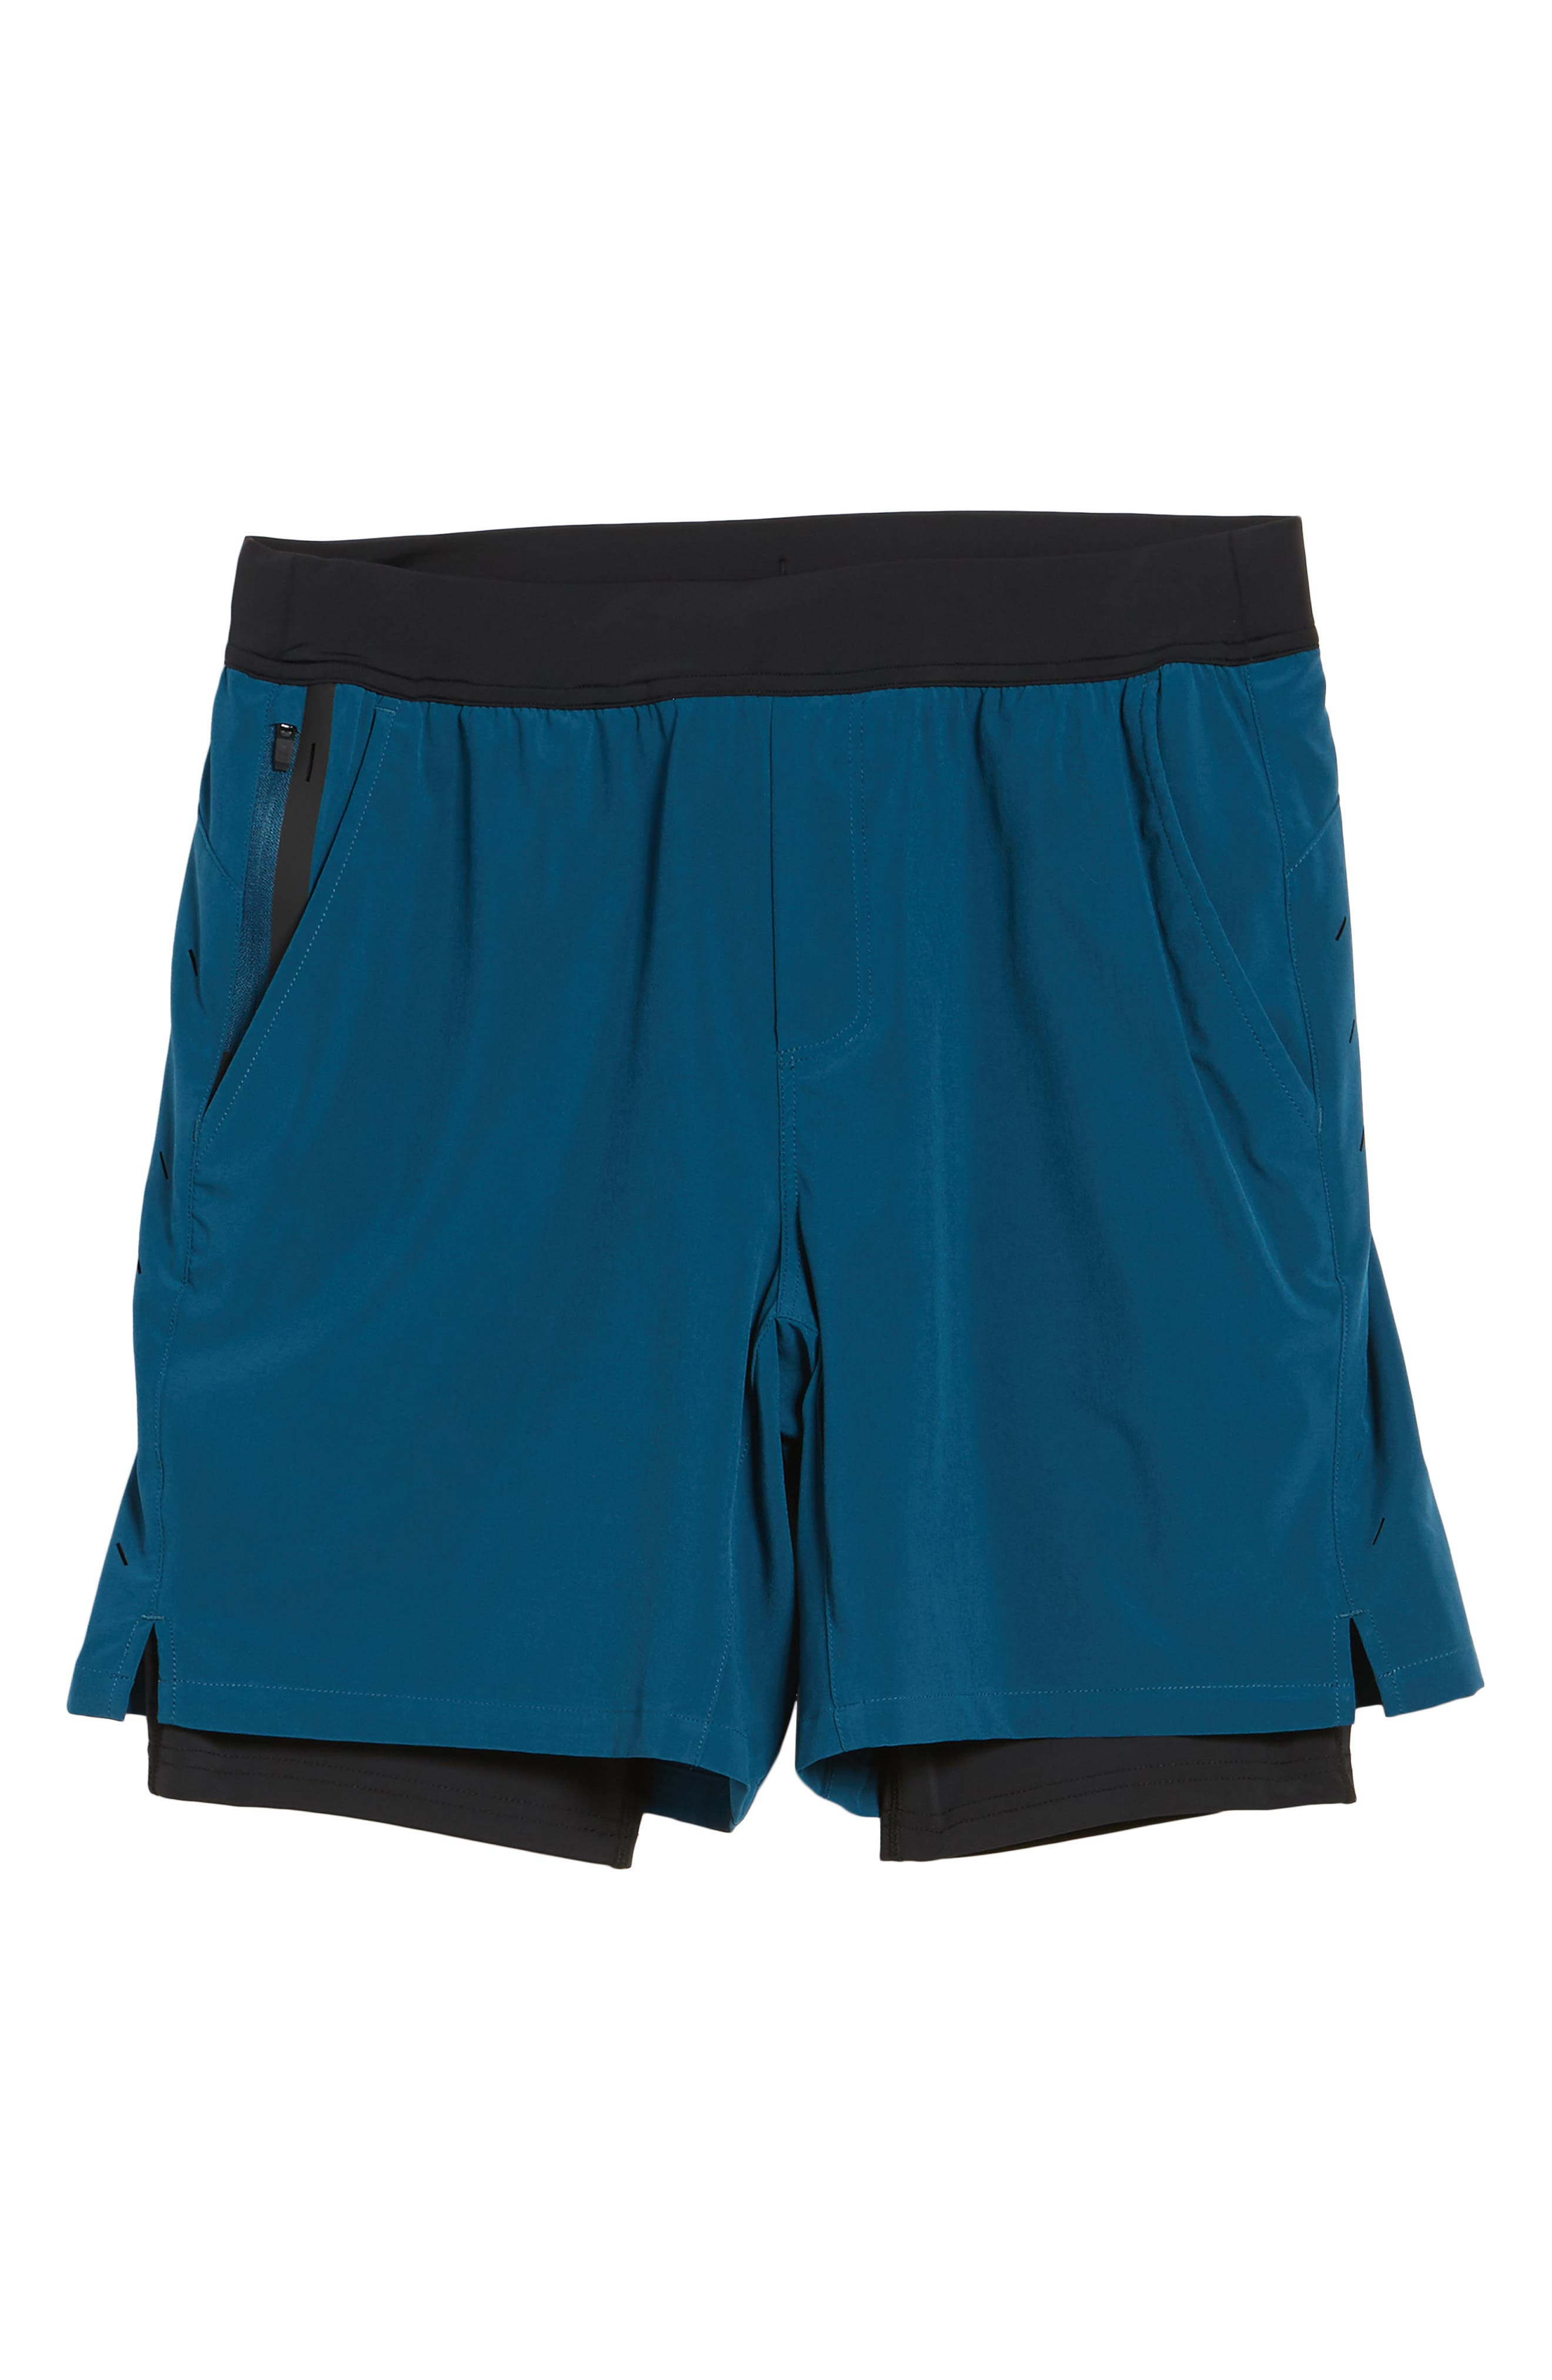 Interval Athletic Shorts,                             Alternate thumbnail 6, color,                             Dark Teal